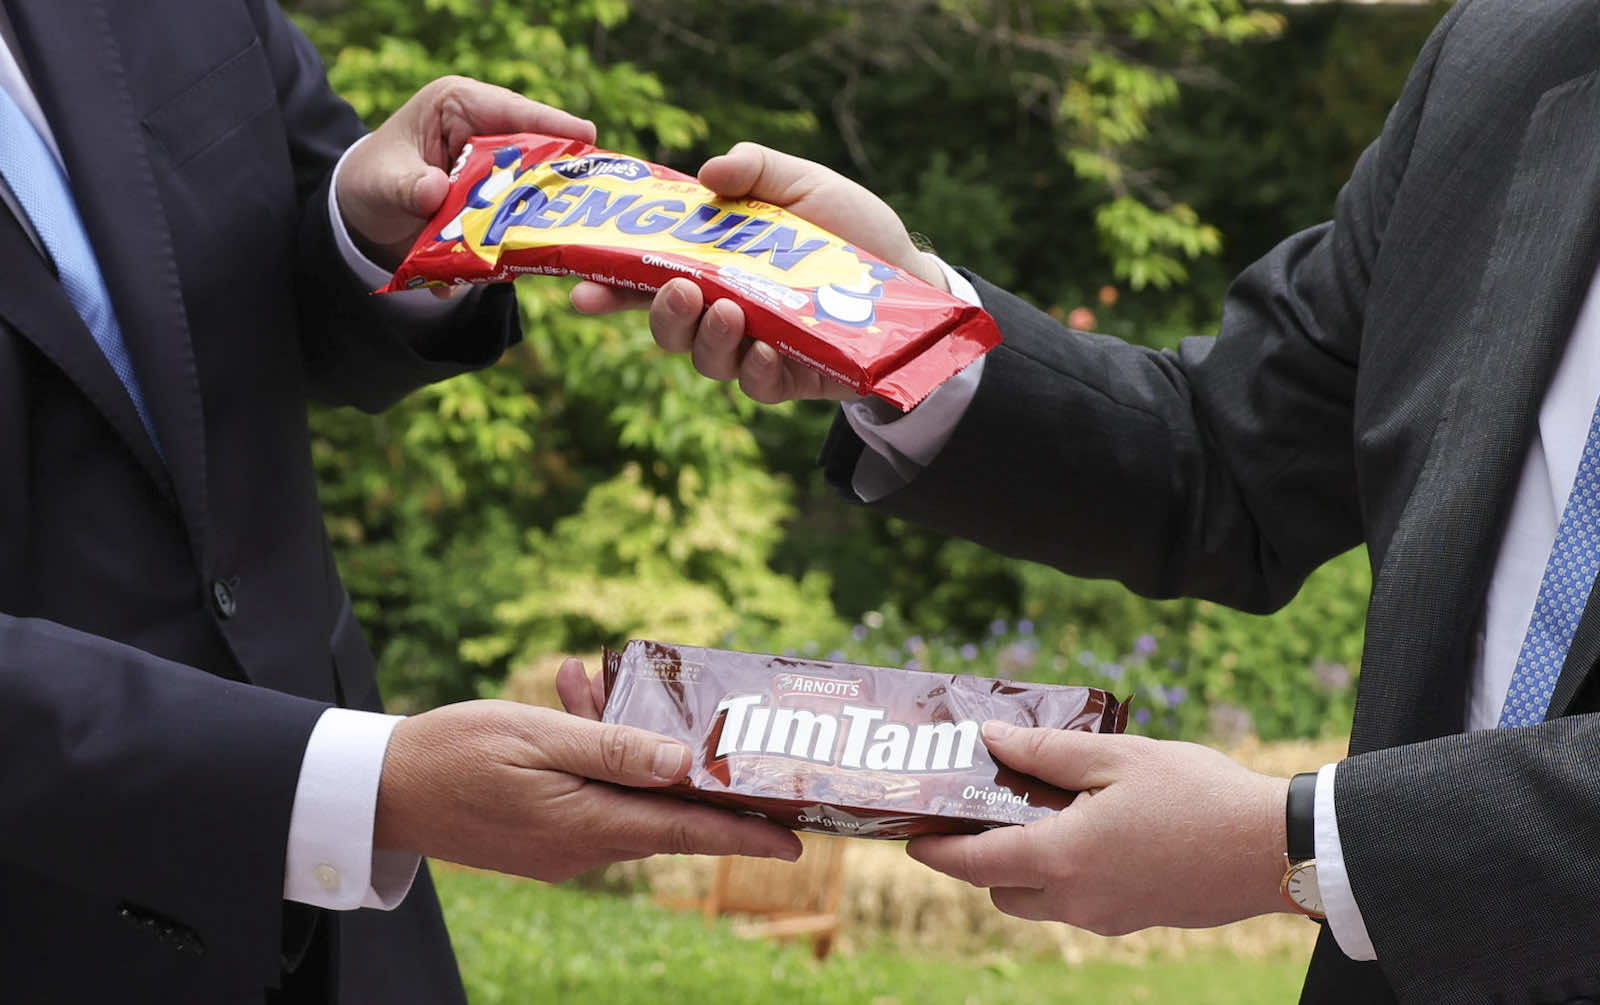 Scott Morrison and Boris Johnson exchange Penguin and Timtam biscuits after talks in London this week (Andrew Parsons/No 10 Downing Street/Flickr)